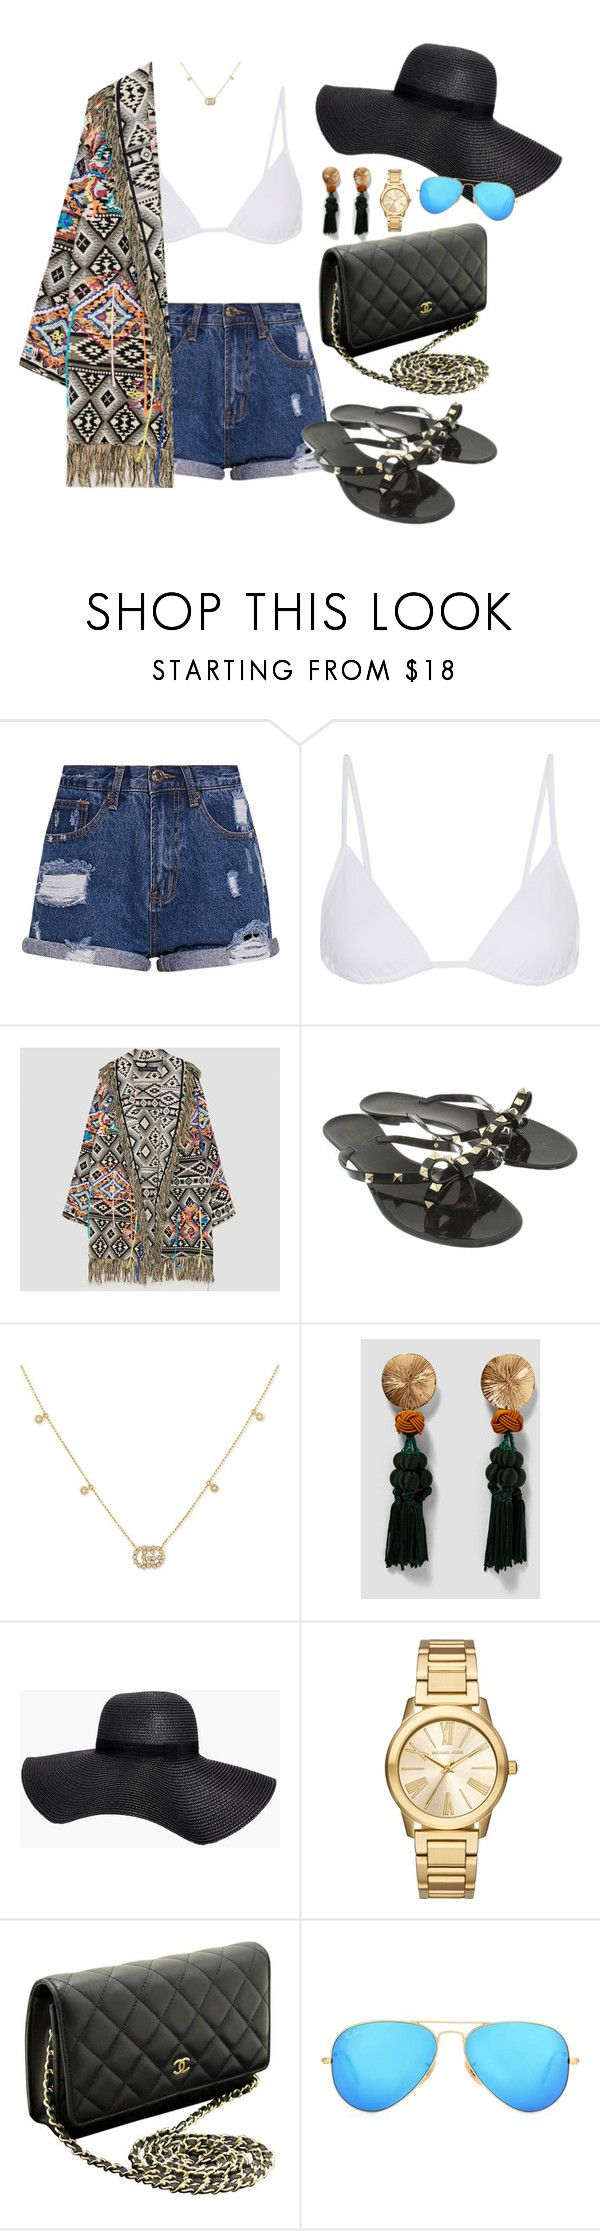 """""""Bikini 55"""" by caa123 ❤ liked on Polyvore featuring Eres, Valentino, Gucci, Boohoo, Michael Kors, Chanel and Ray-Ban"""